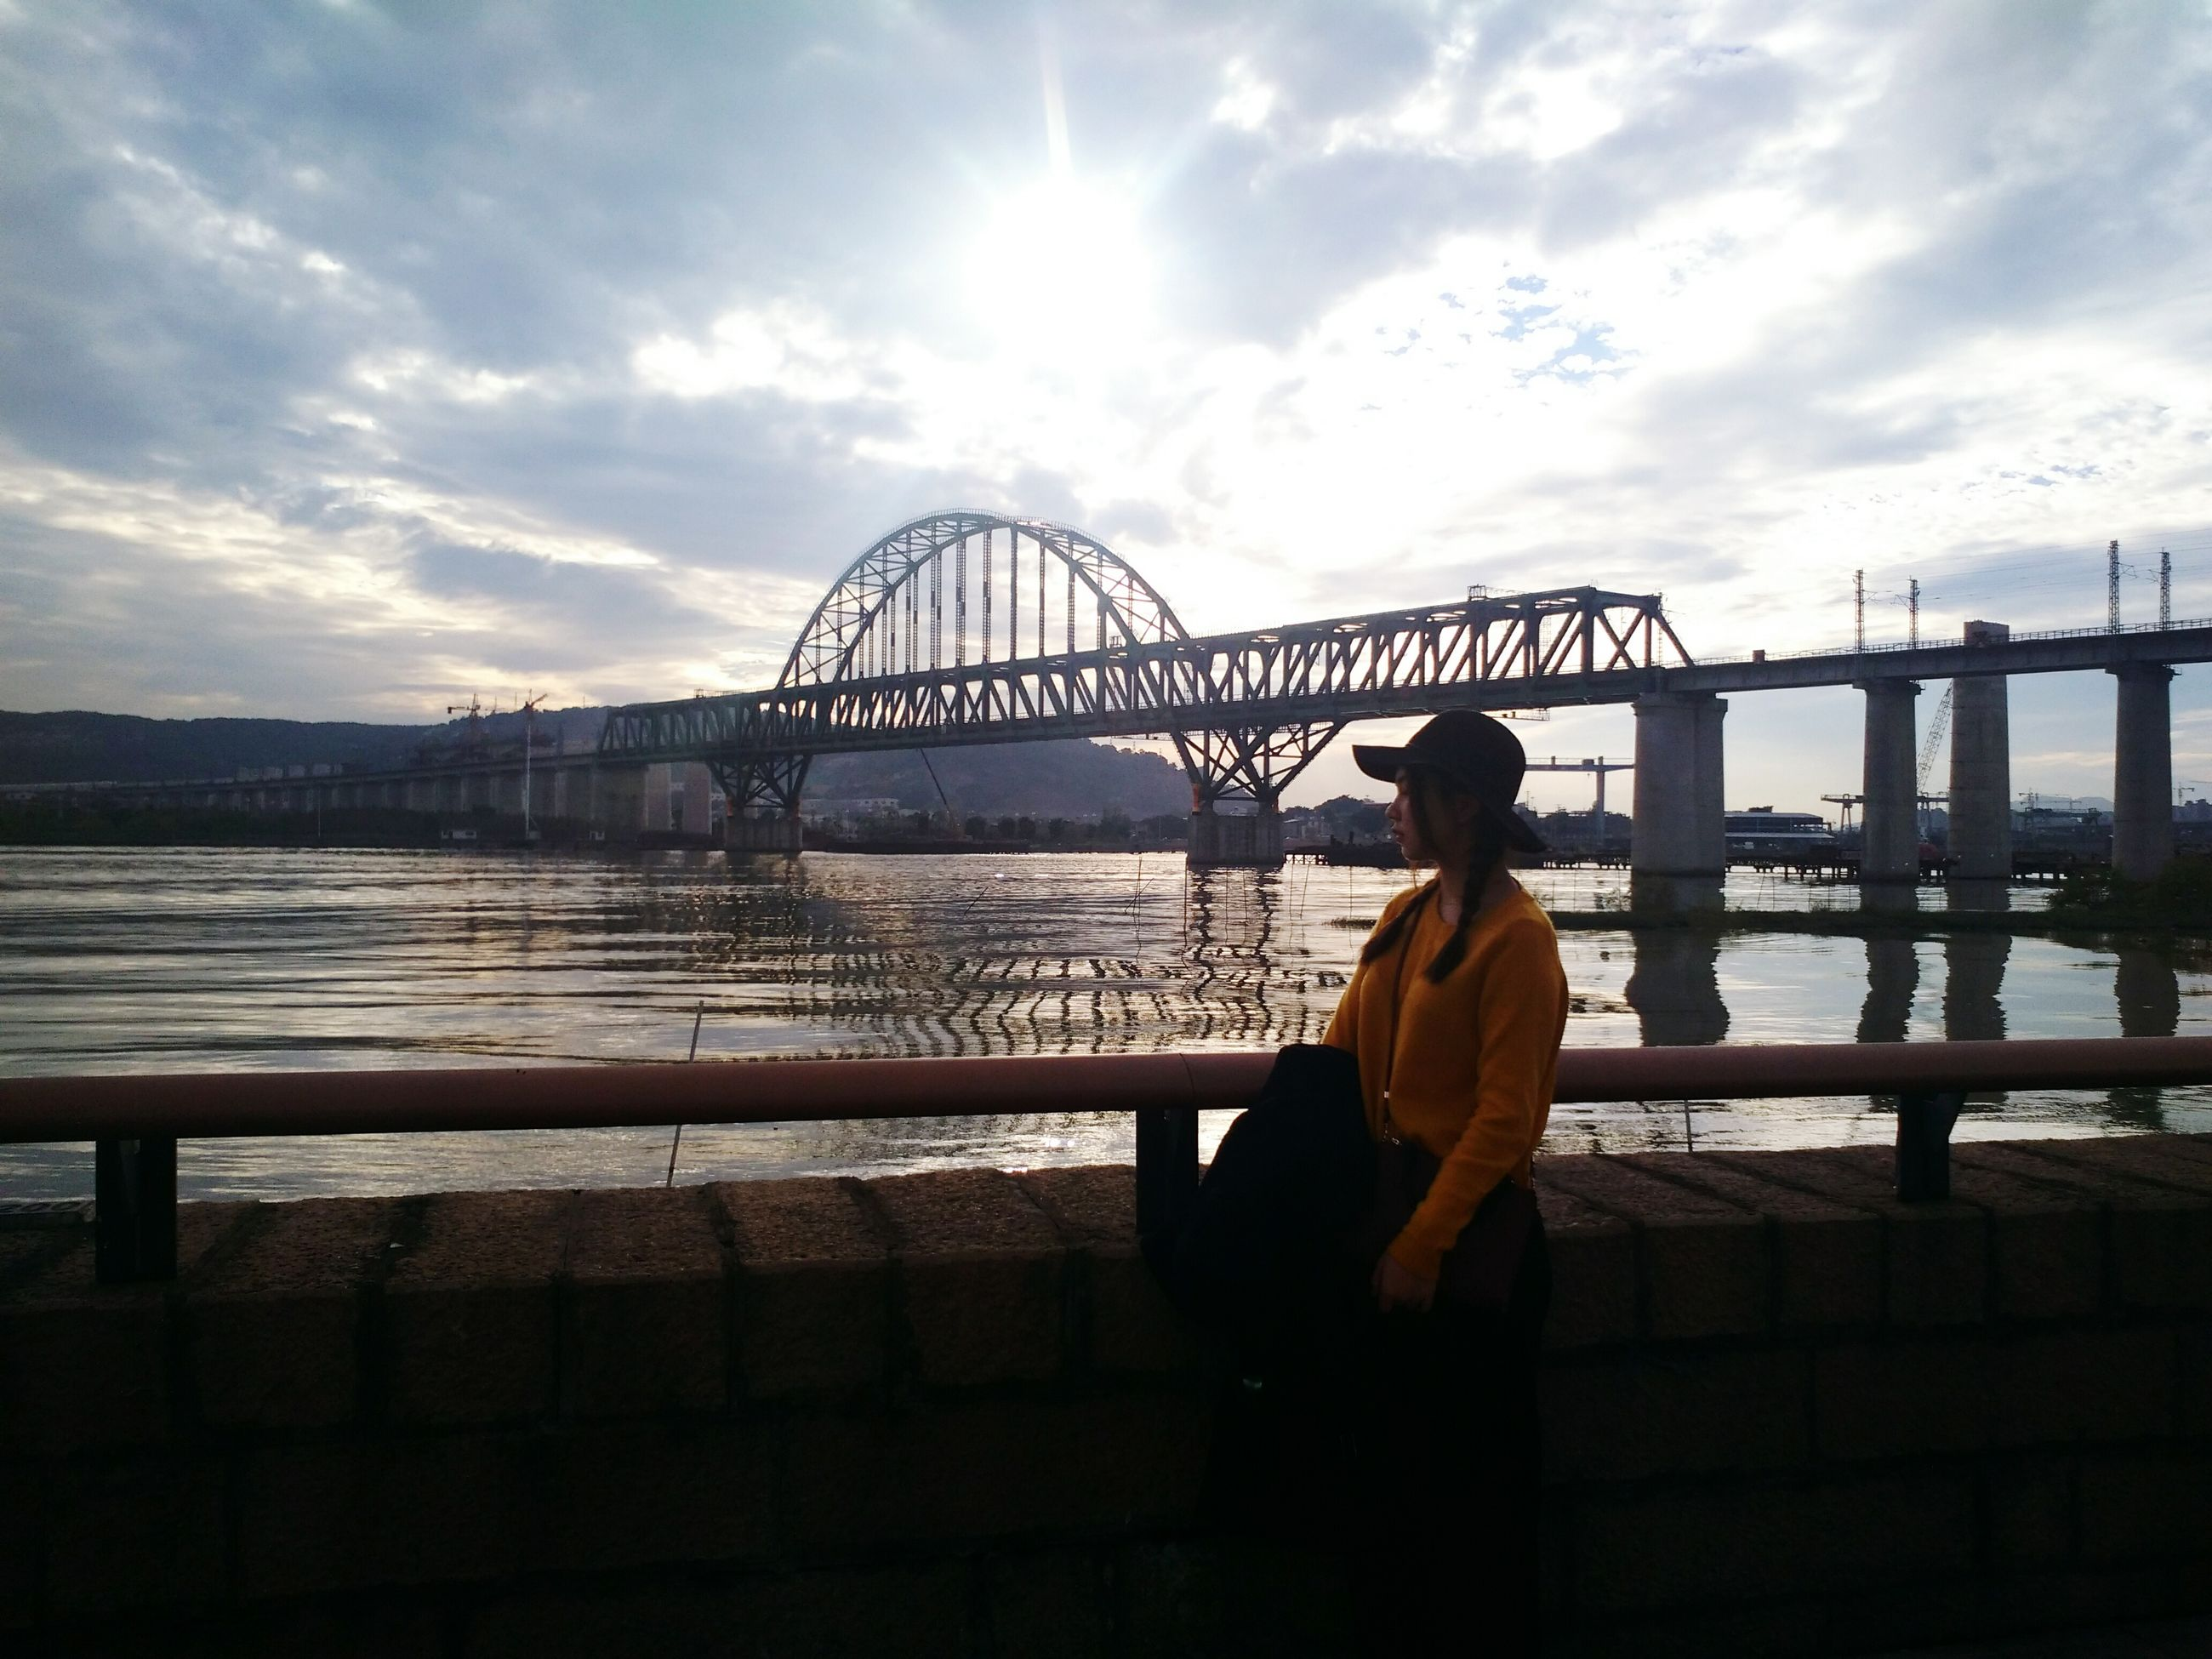 bridge - man made structure, one man only, sky, sunset, sun, river, outdoors, rear view, silhouette, idyllic, one person, men, beauty in nature, architecture, adults only, water, people, only men, railway bridge, day, adult